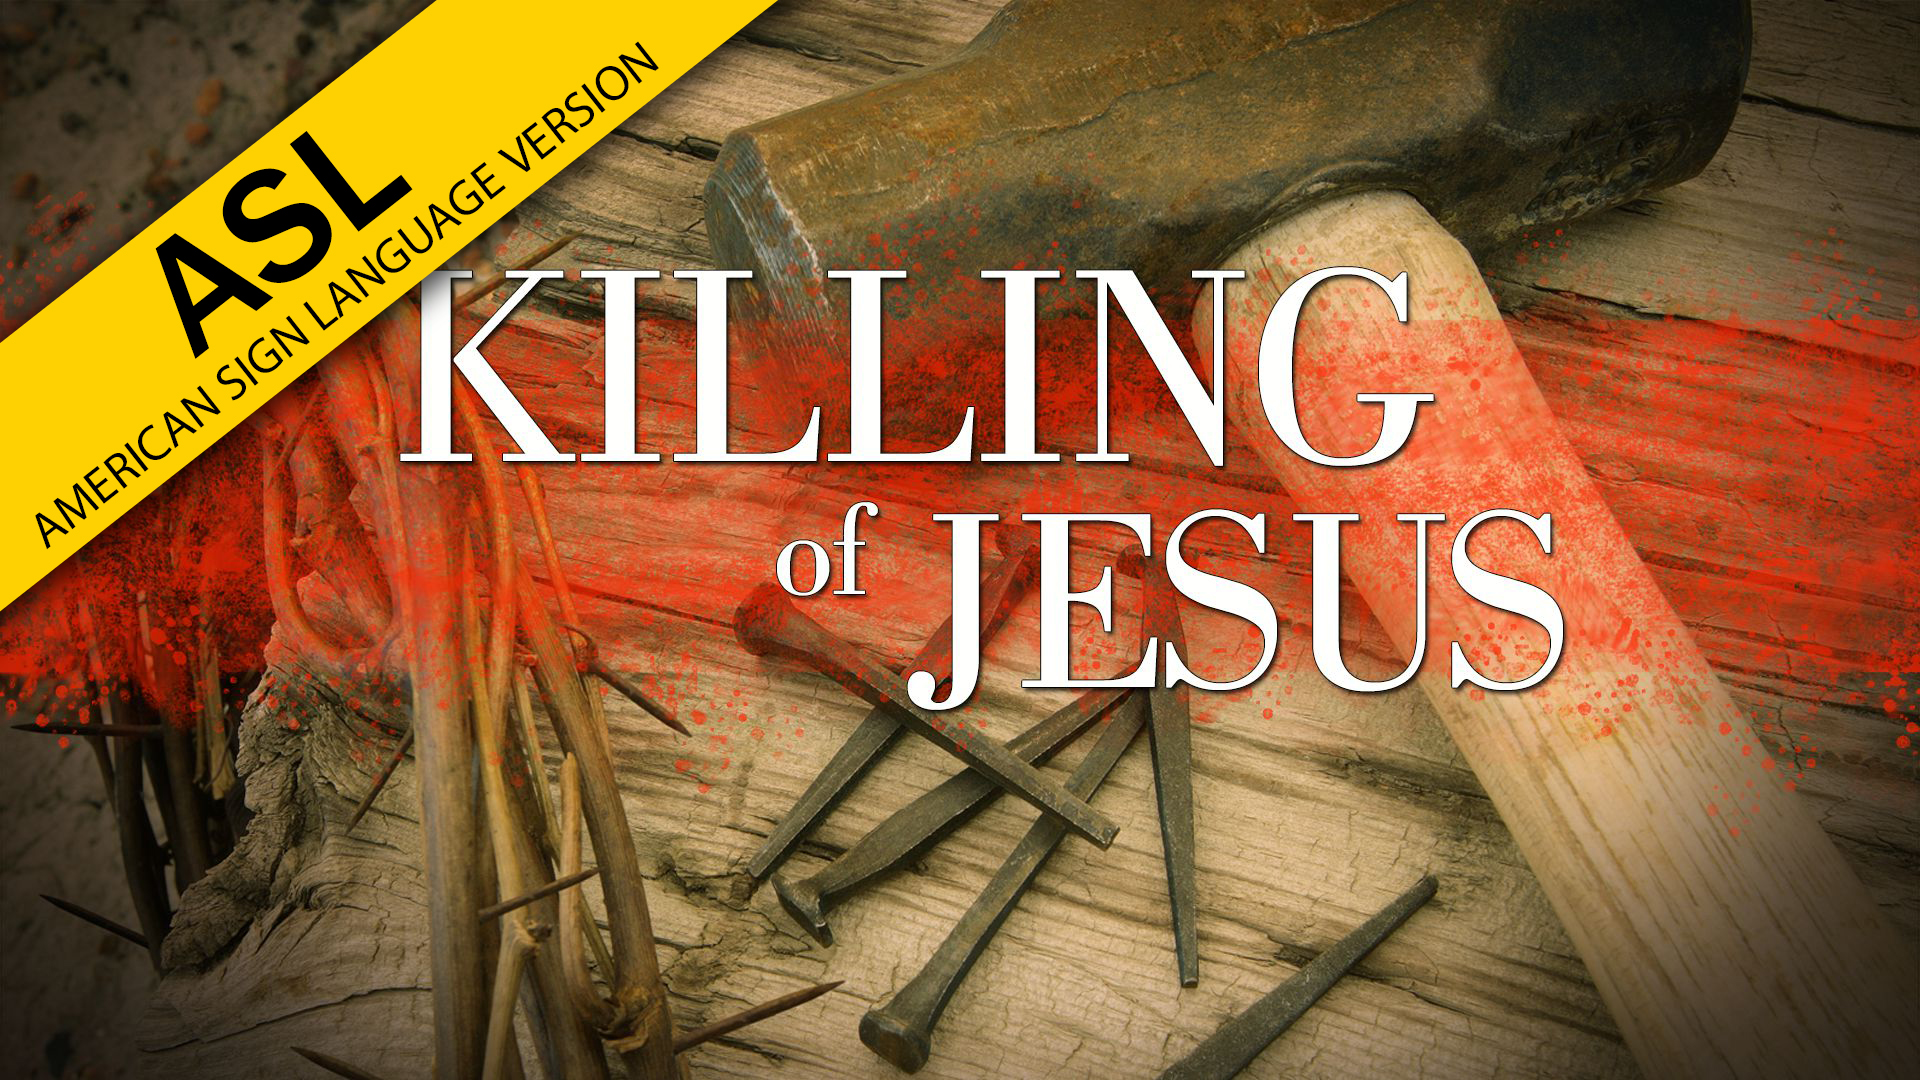 The Killing of Jesus (ASL)